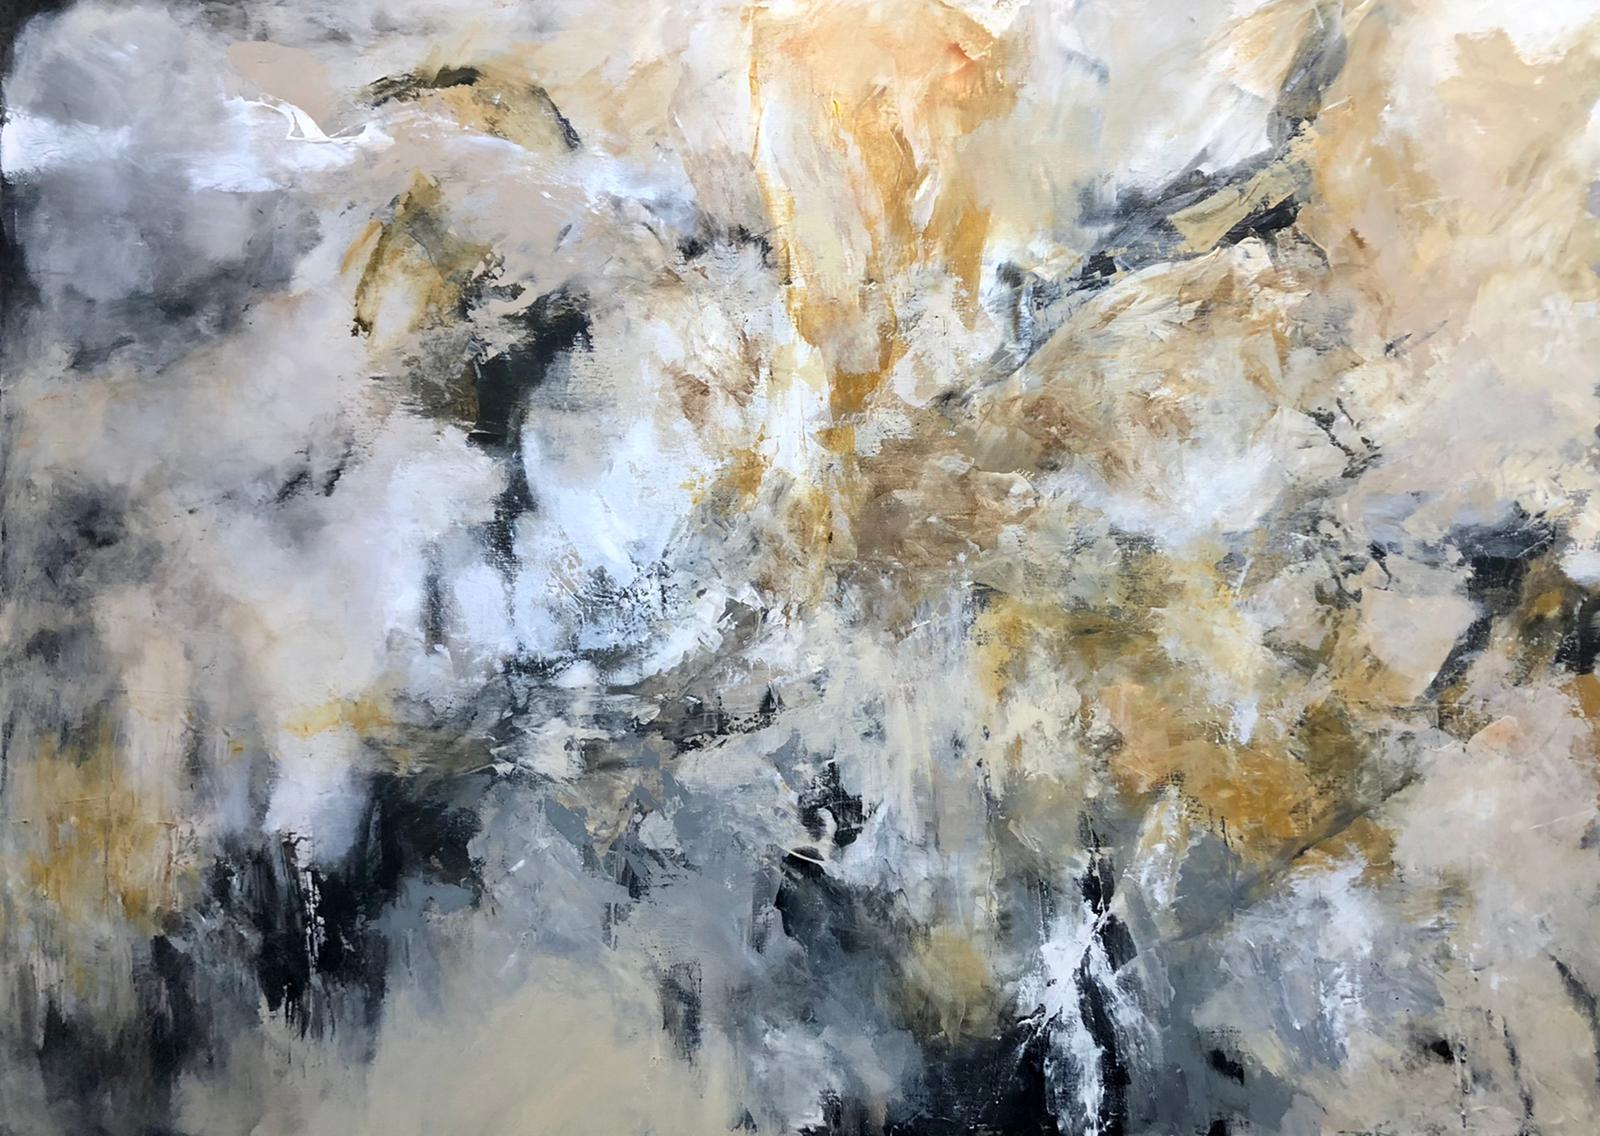 Miri Baruch, Acrylic on canvas, 100 by 140 cm